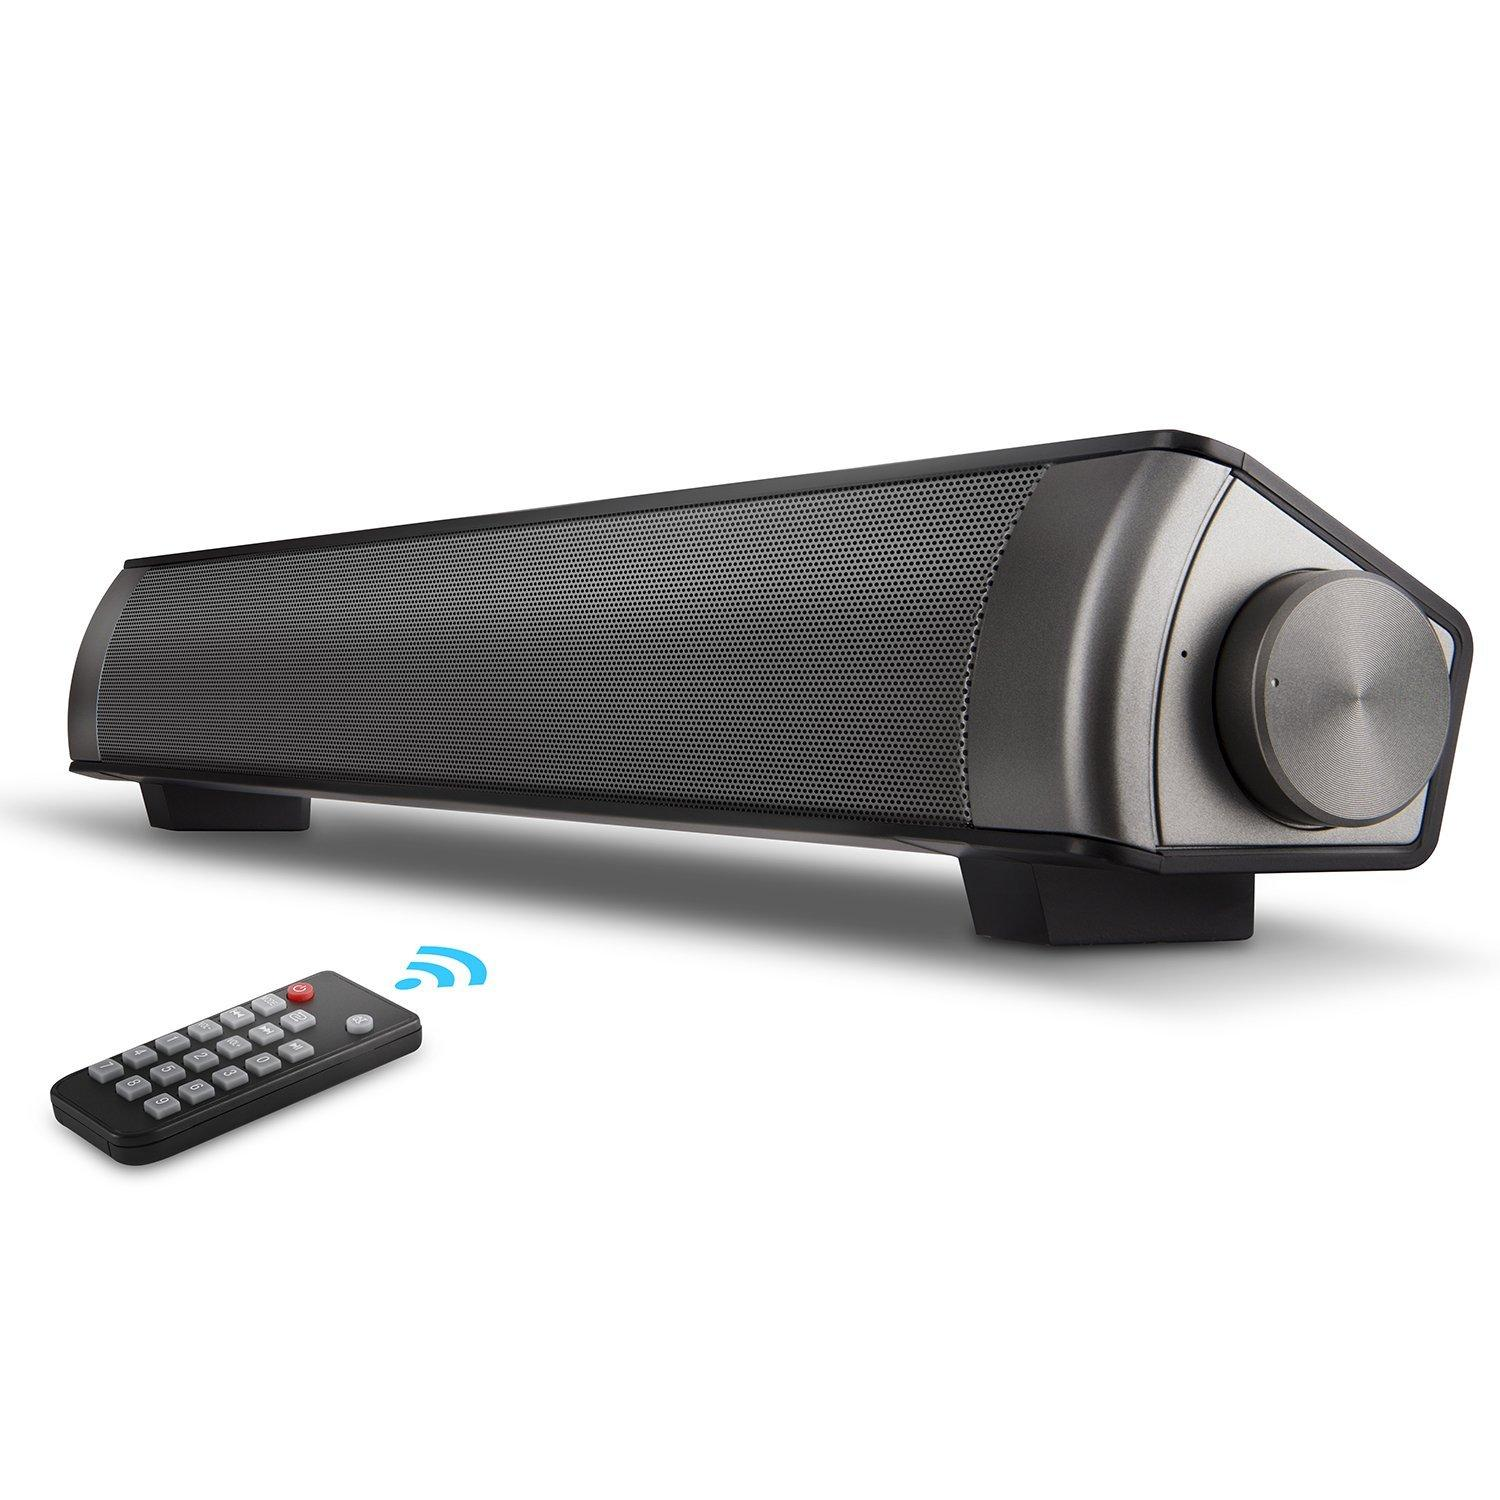 hight resolution of 2019 soundbar surround sound bar home theater system with wired tf card bluetooth speaker wireless sound bar for tv pc cellphone tablet from jackwu636